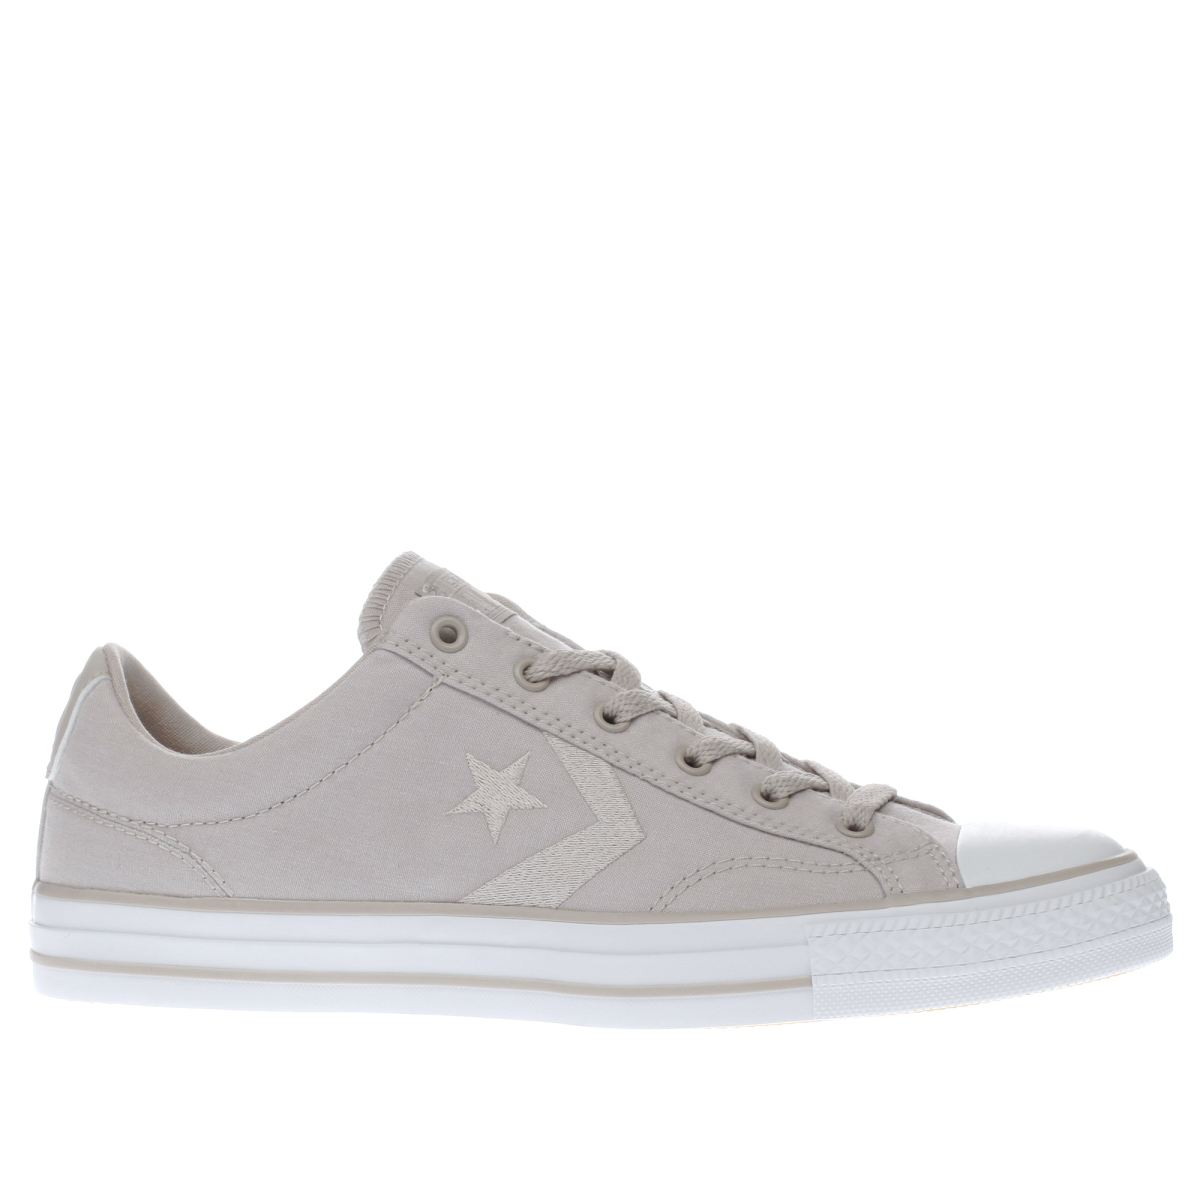 converse stone star player ox trainers